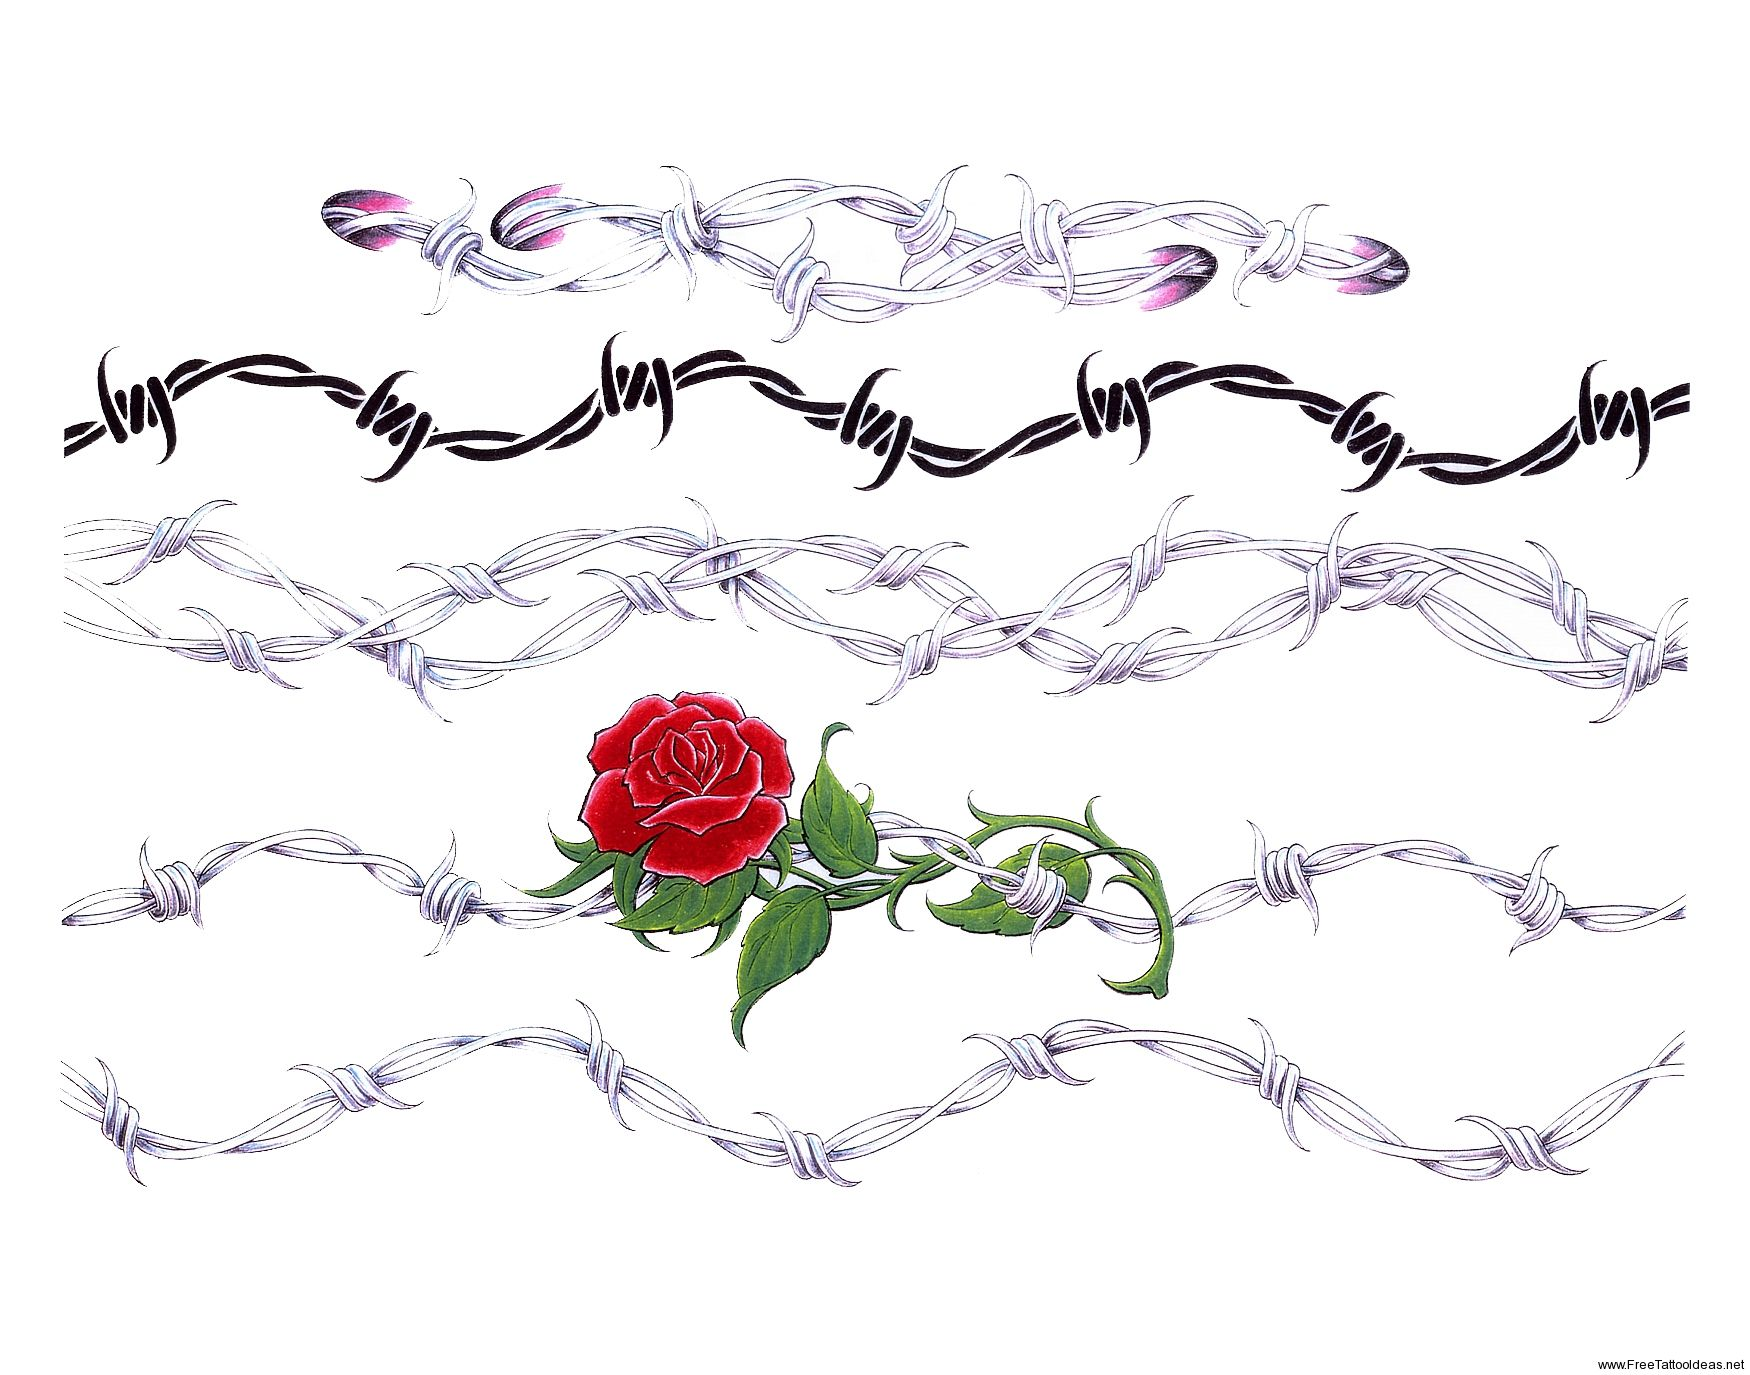 I low the rose mixes with the barbed wire. | Tattoos | Pinterest ...